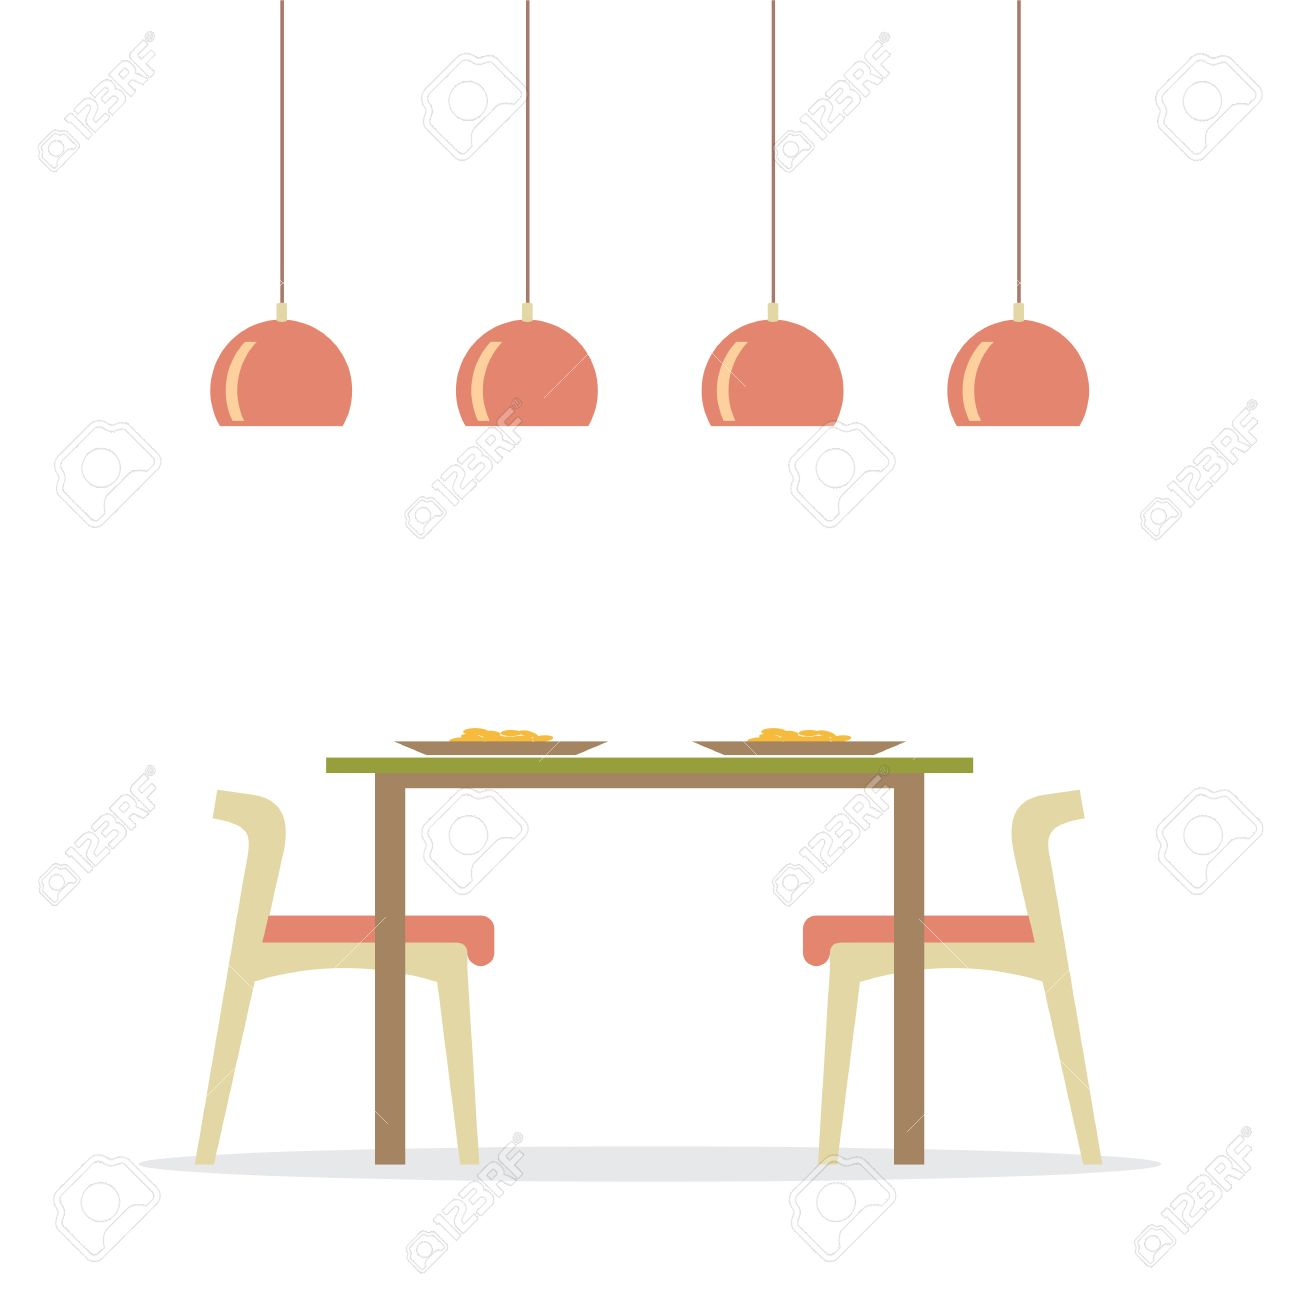 Esszimmer Clipart Flat Design Interior Dining Room Vector Illustration